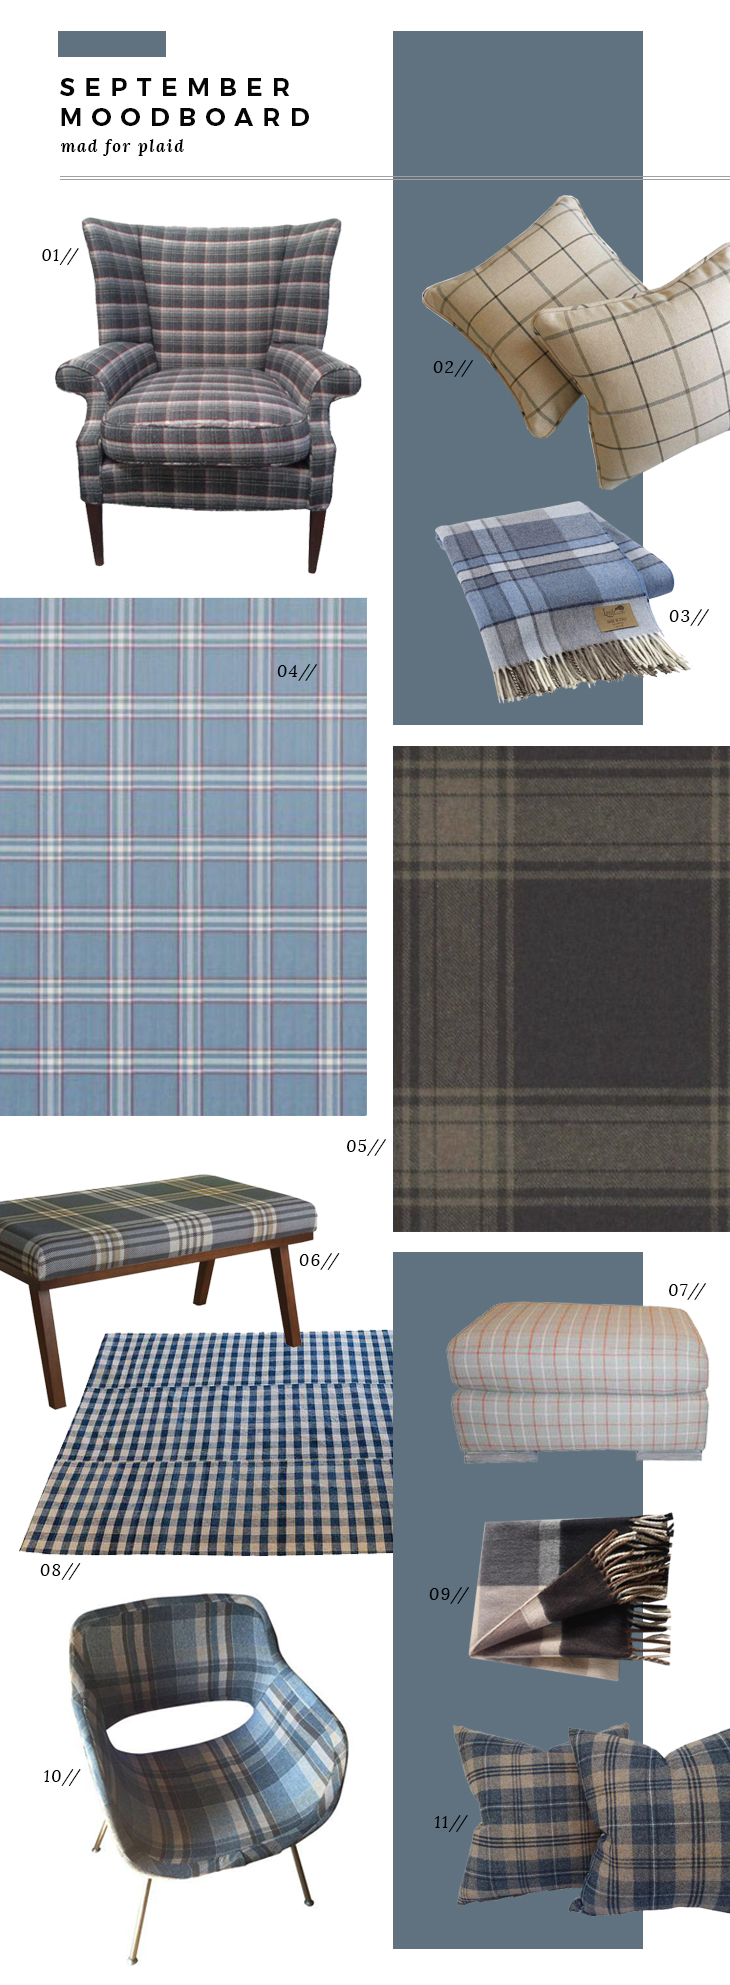 September Moodboard - Plaid